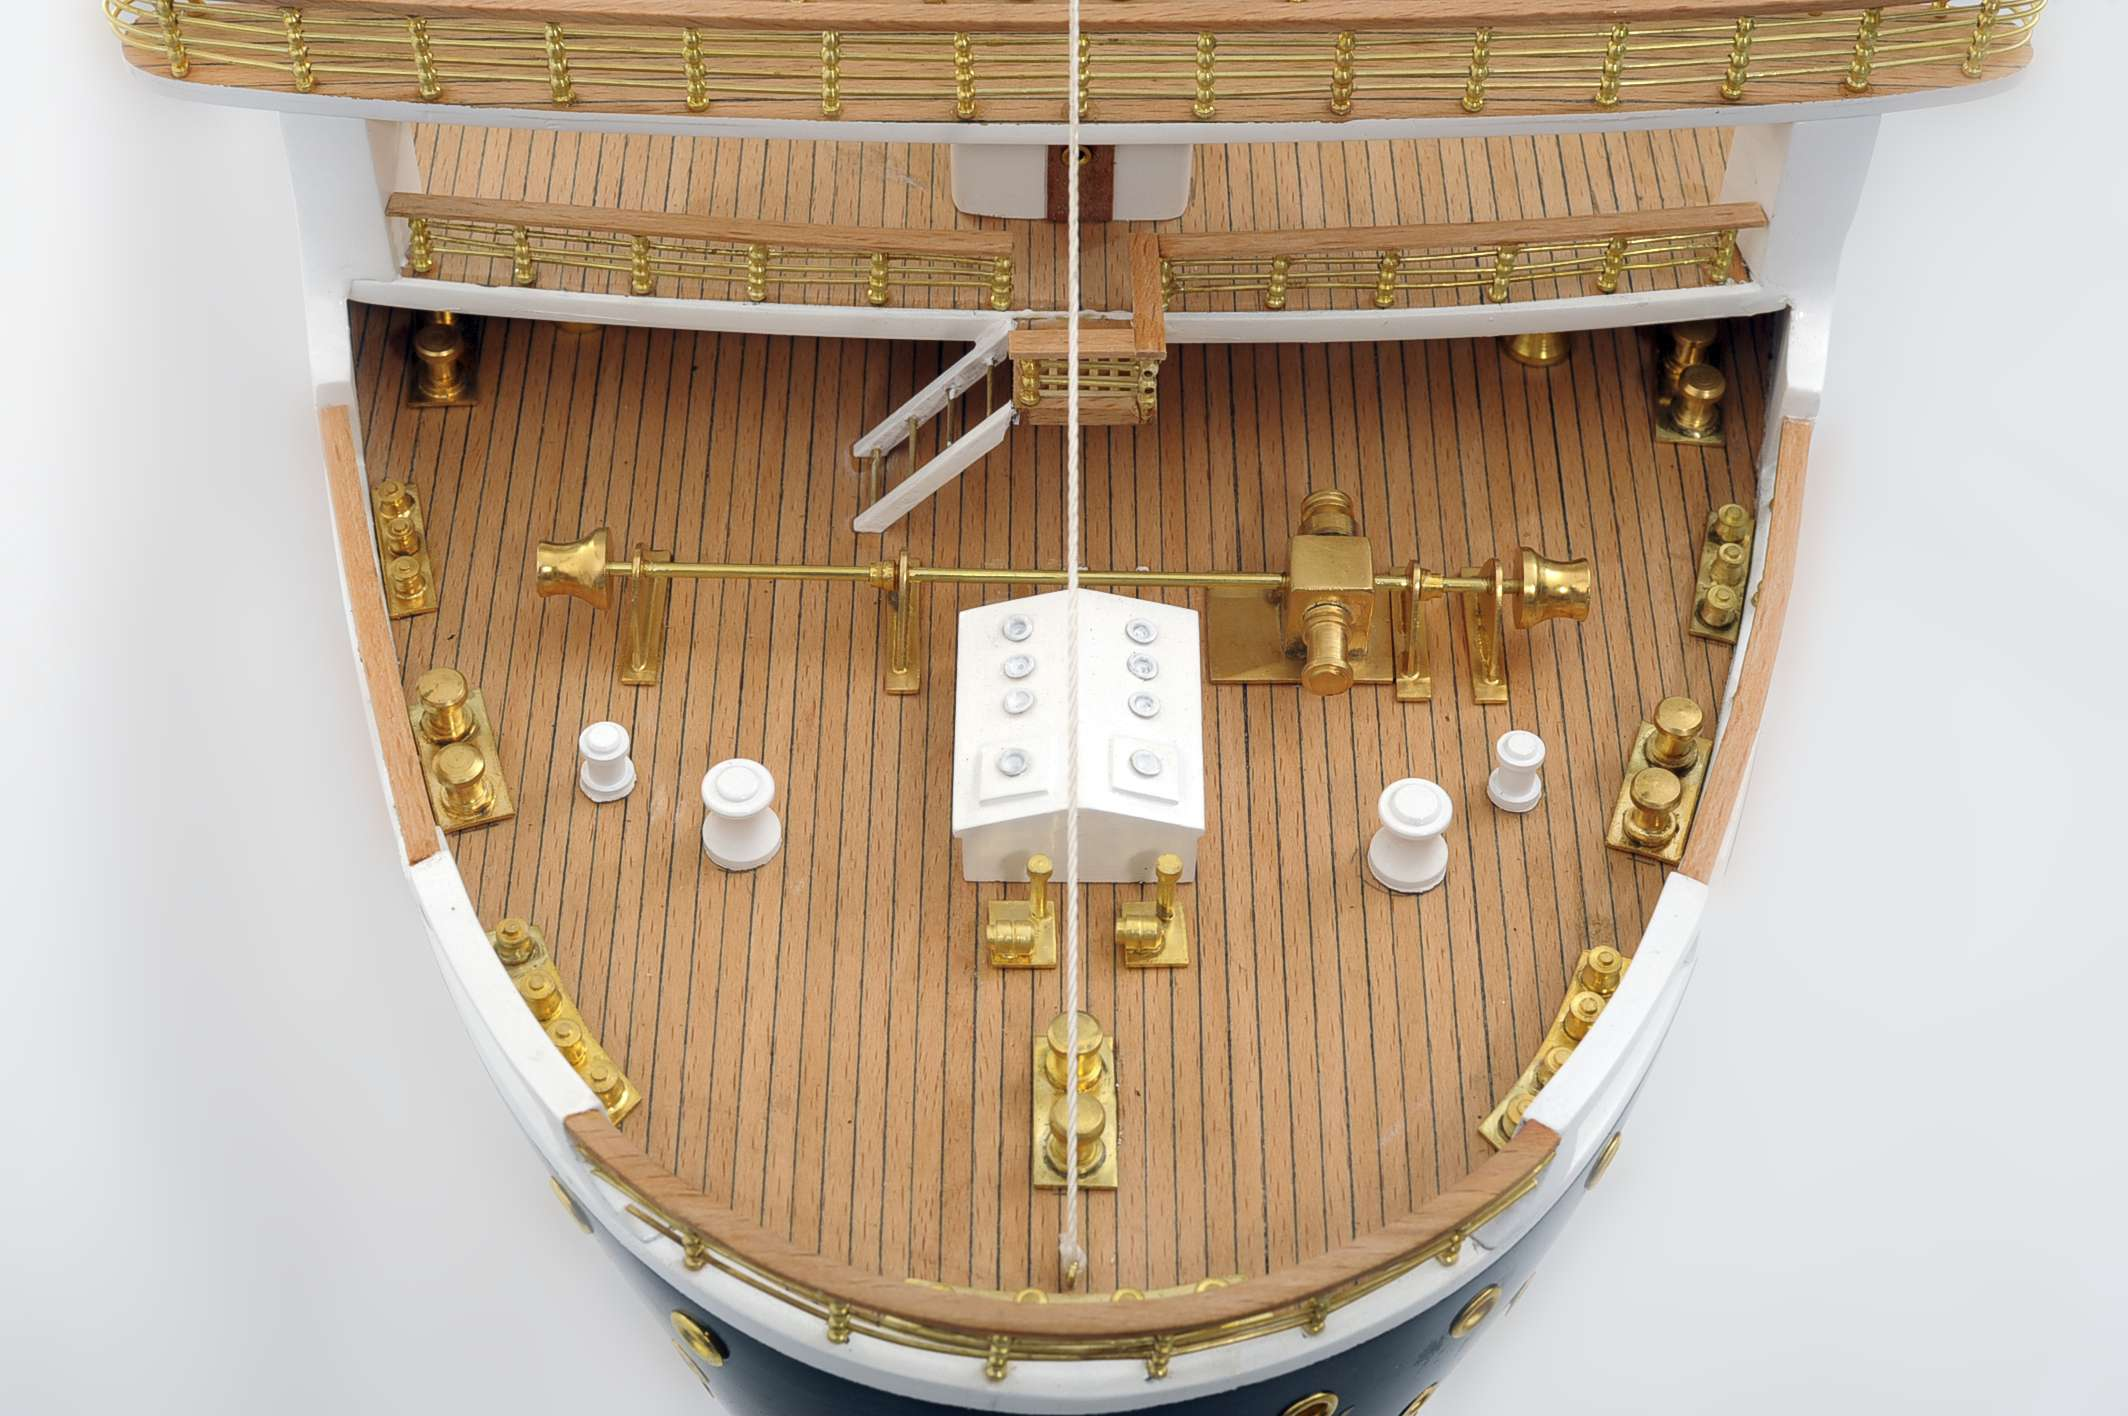 1484-4984-RMS-Queen-Mary-Model